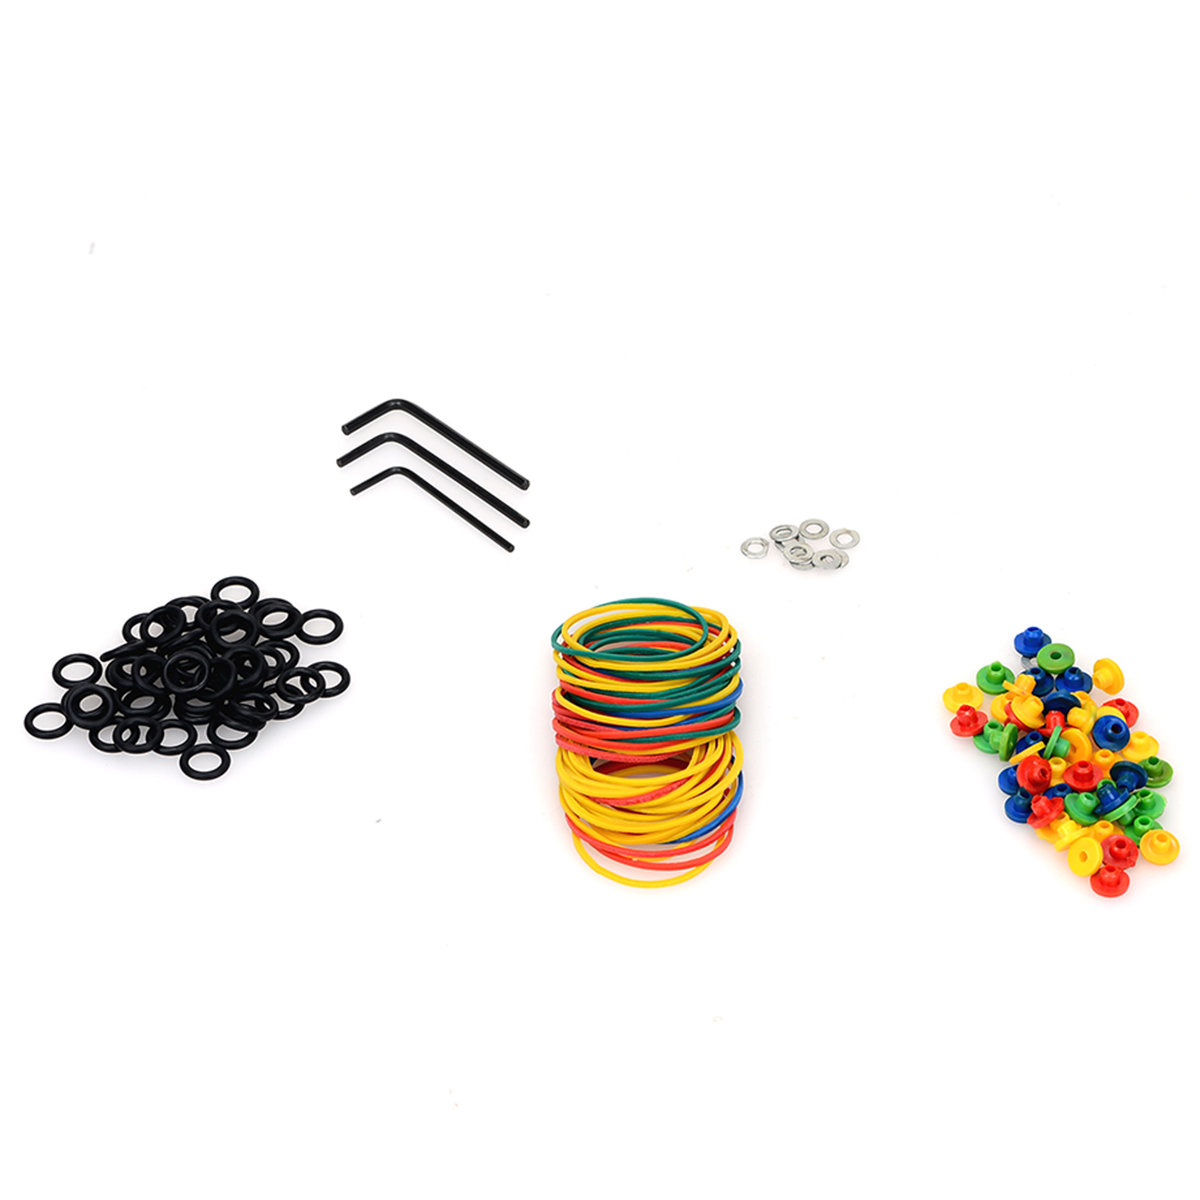 Tattoo Accessories Parts Kit Set of Tattoo Machine Rubber Band Shockproof O-ring Grommets Nipples Wrench Spacers Tattoo Kit